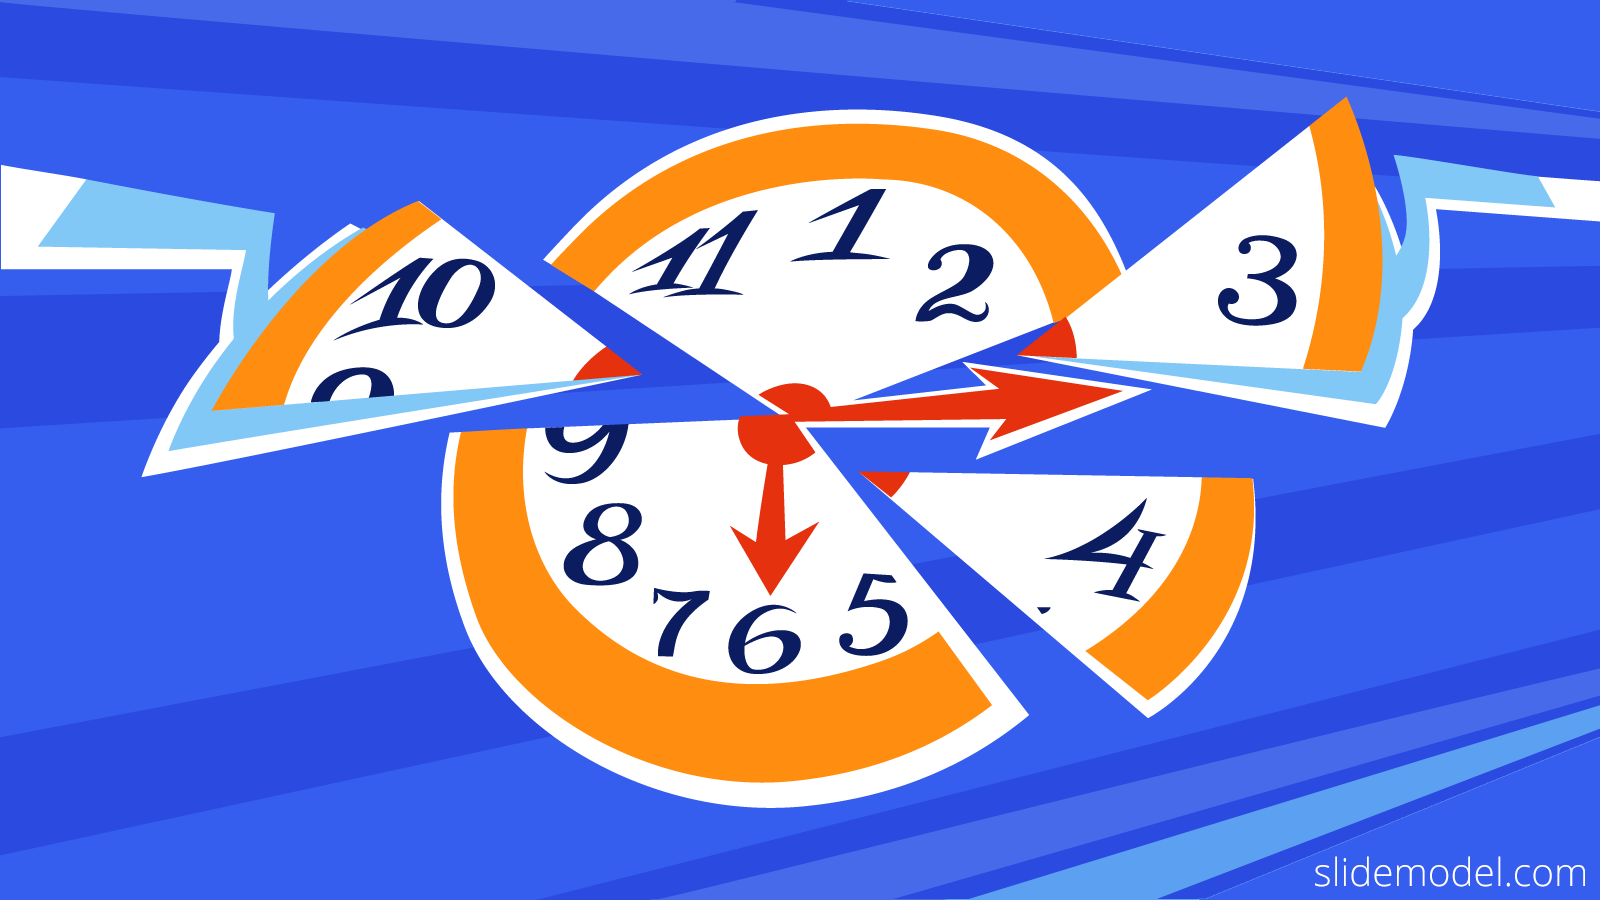 Time Management Concept Idea for Presentations created by SlideModel